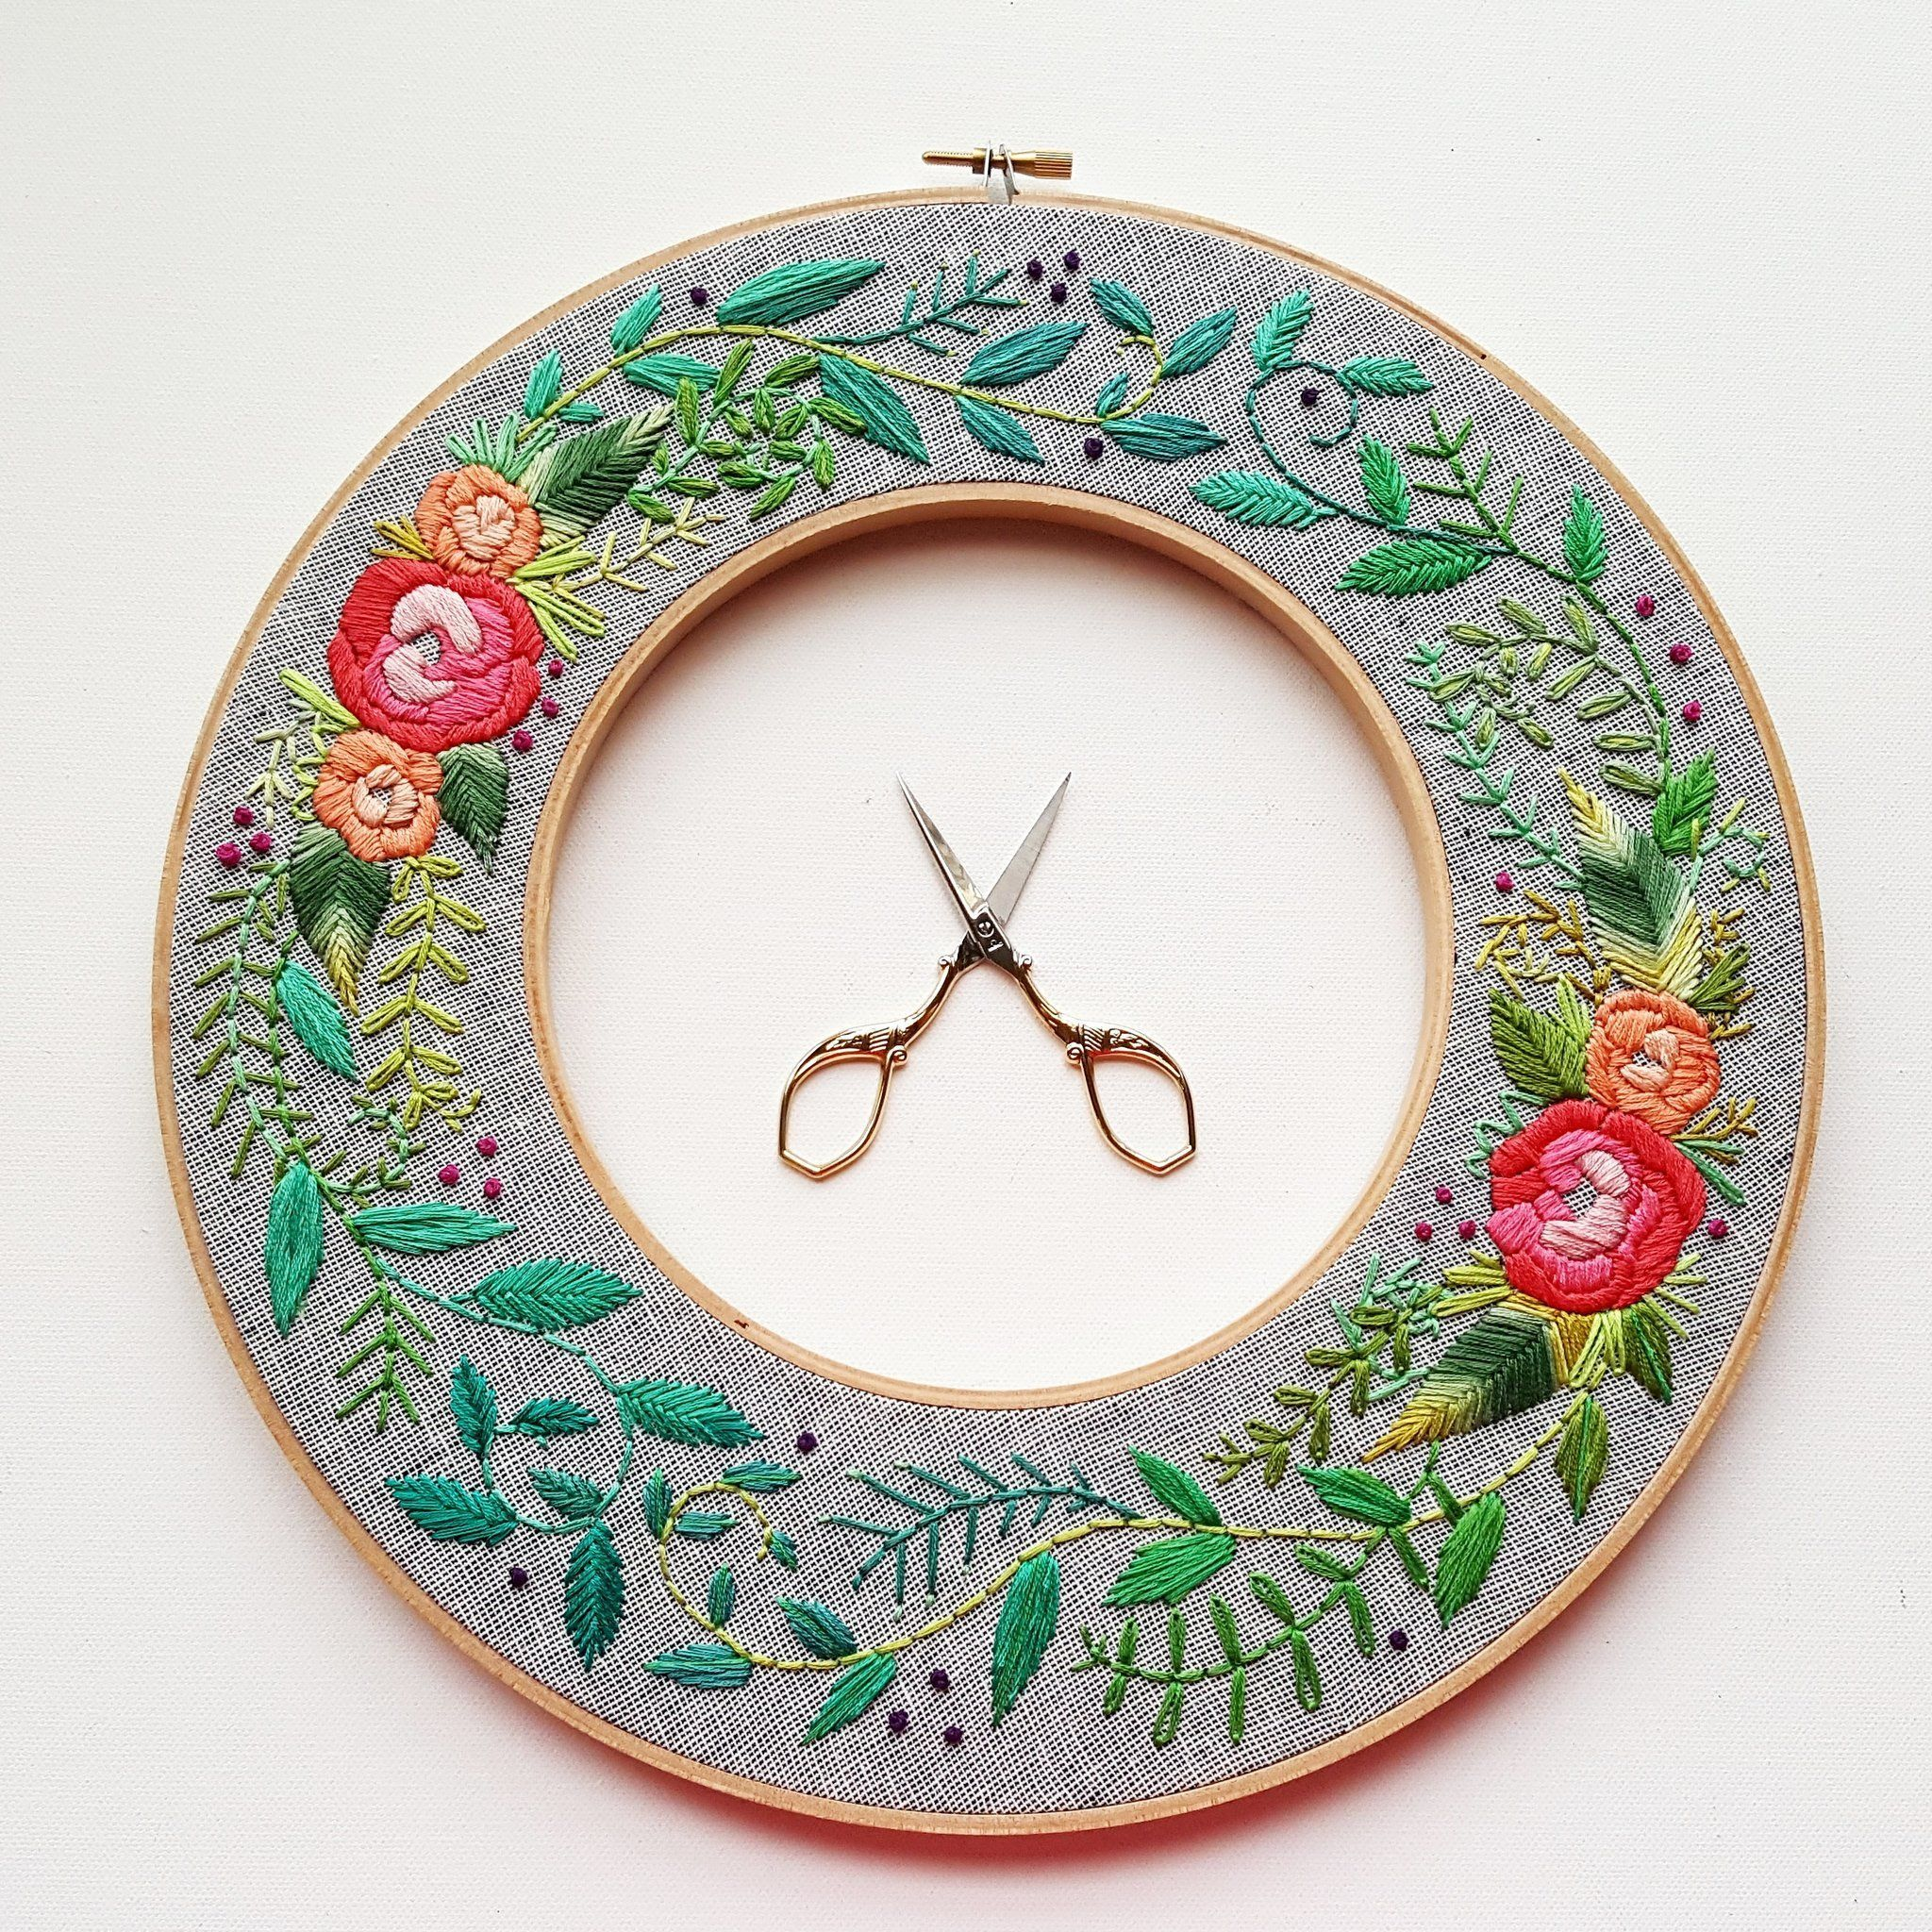 These beautiful wreaths are hand embroidered using cotton floss on